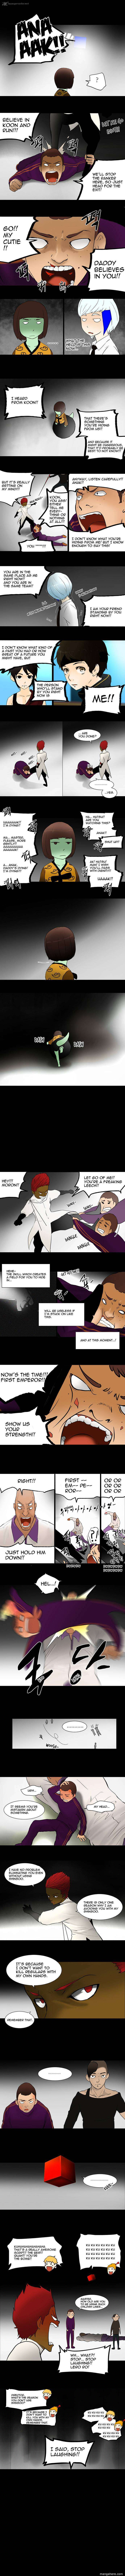 Tower of God 39 Page 2